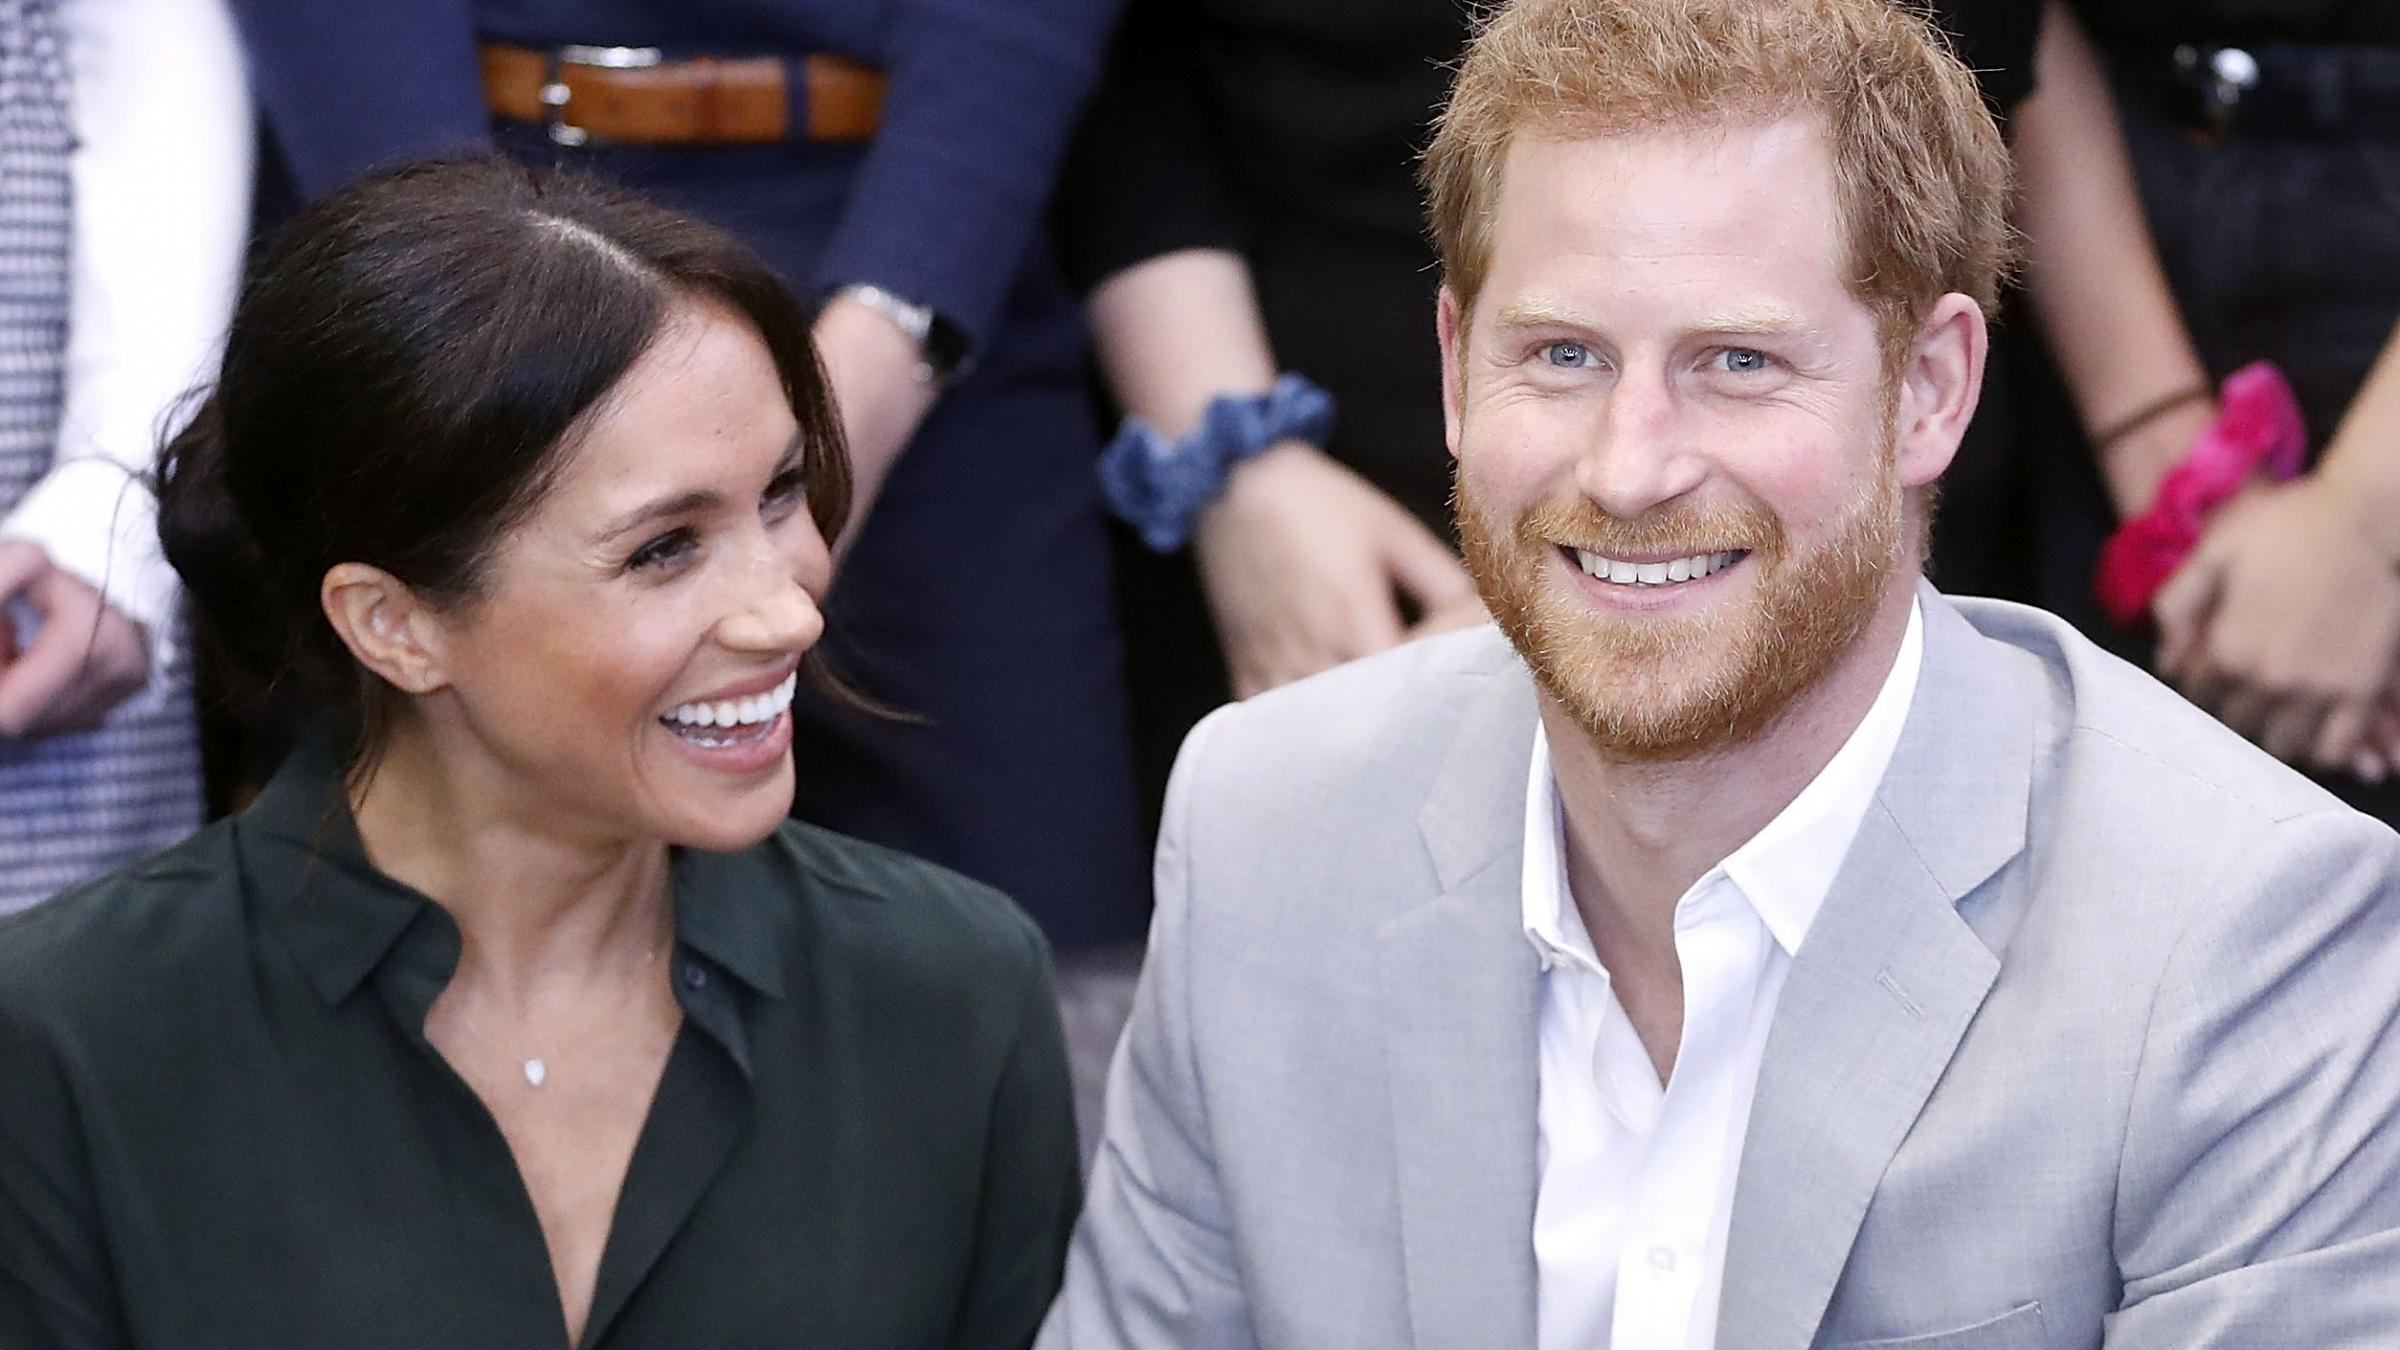 Harry and Meghan to embark on first royal tour as couple